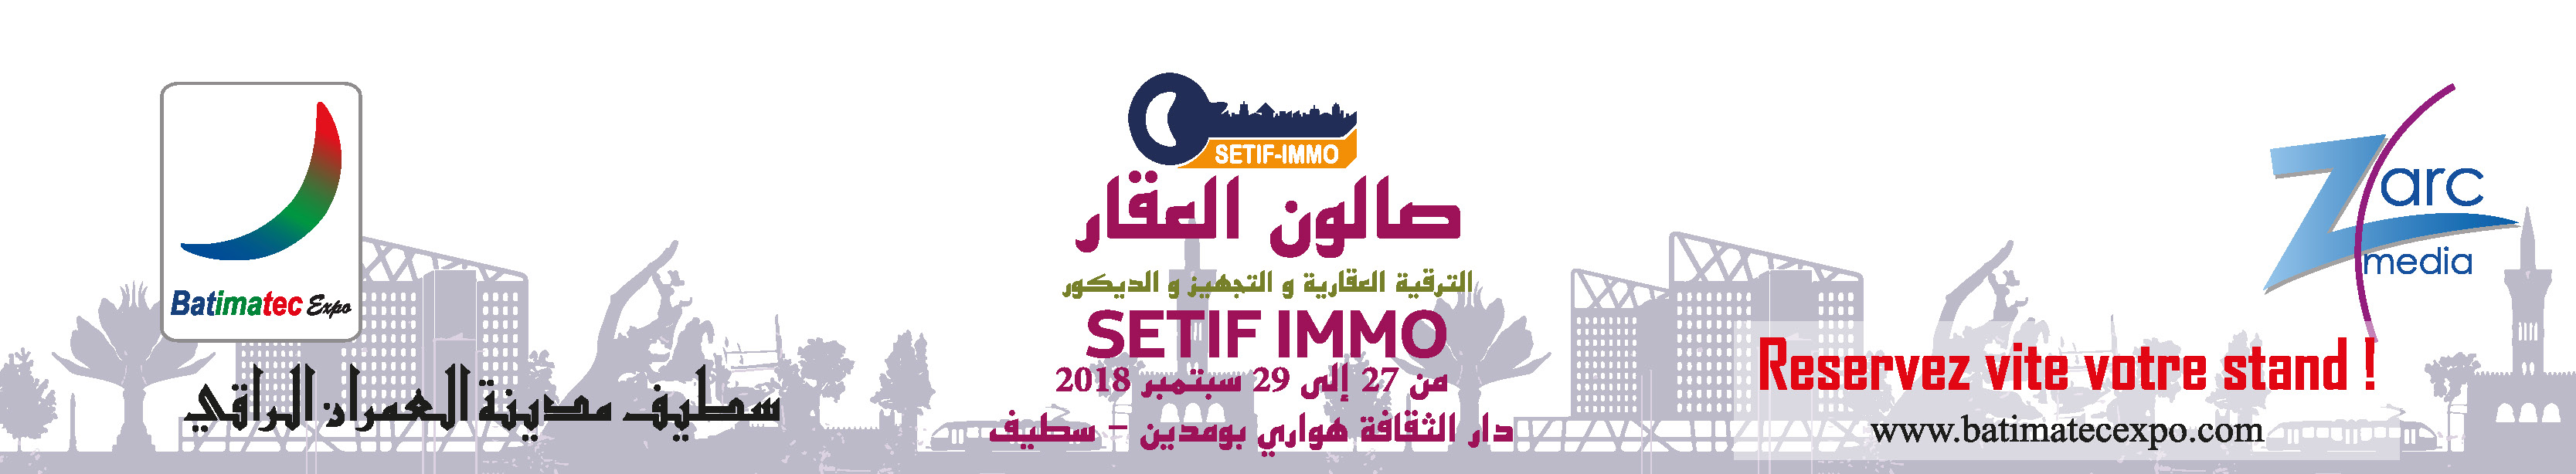 http://www.batimatecexpo.com/page.php?id=141